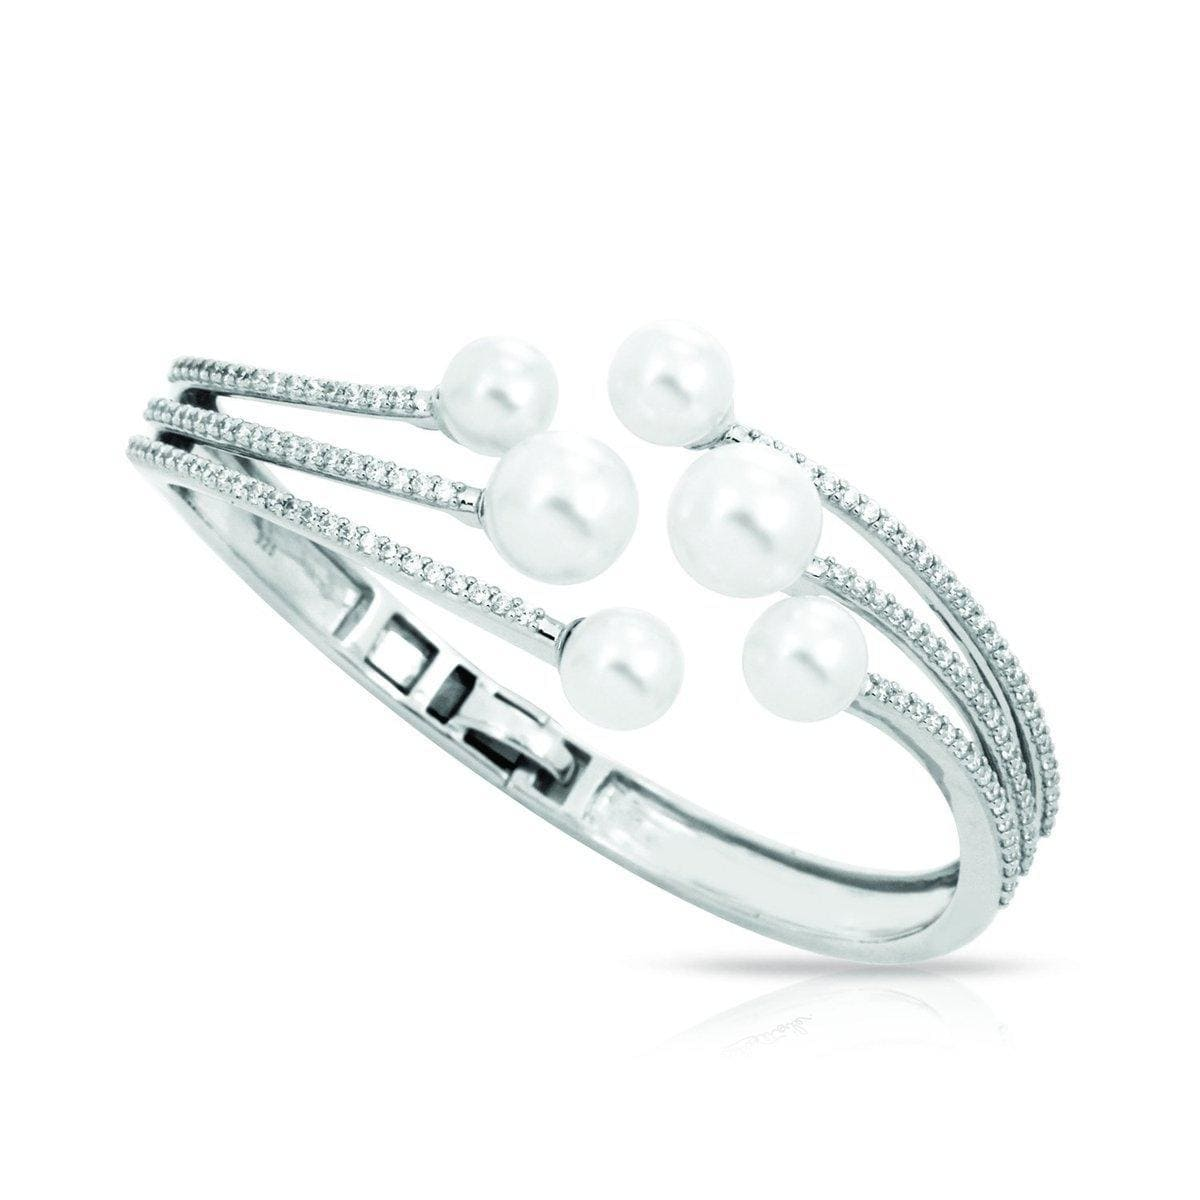 Effervescence White Bangle-Belle Etoile-Renee Taylor Gallery